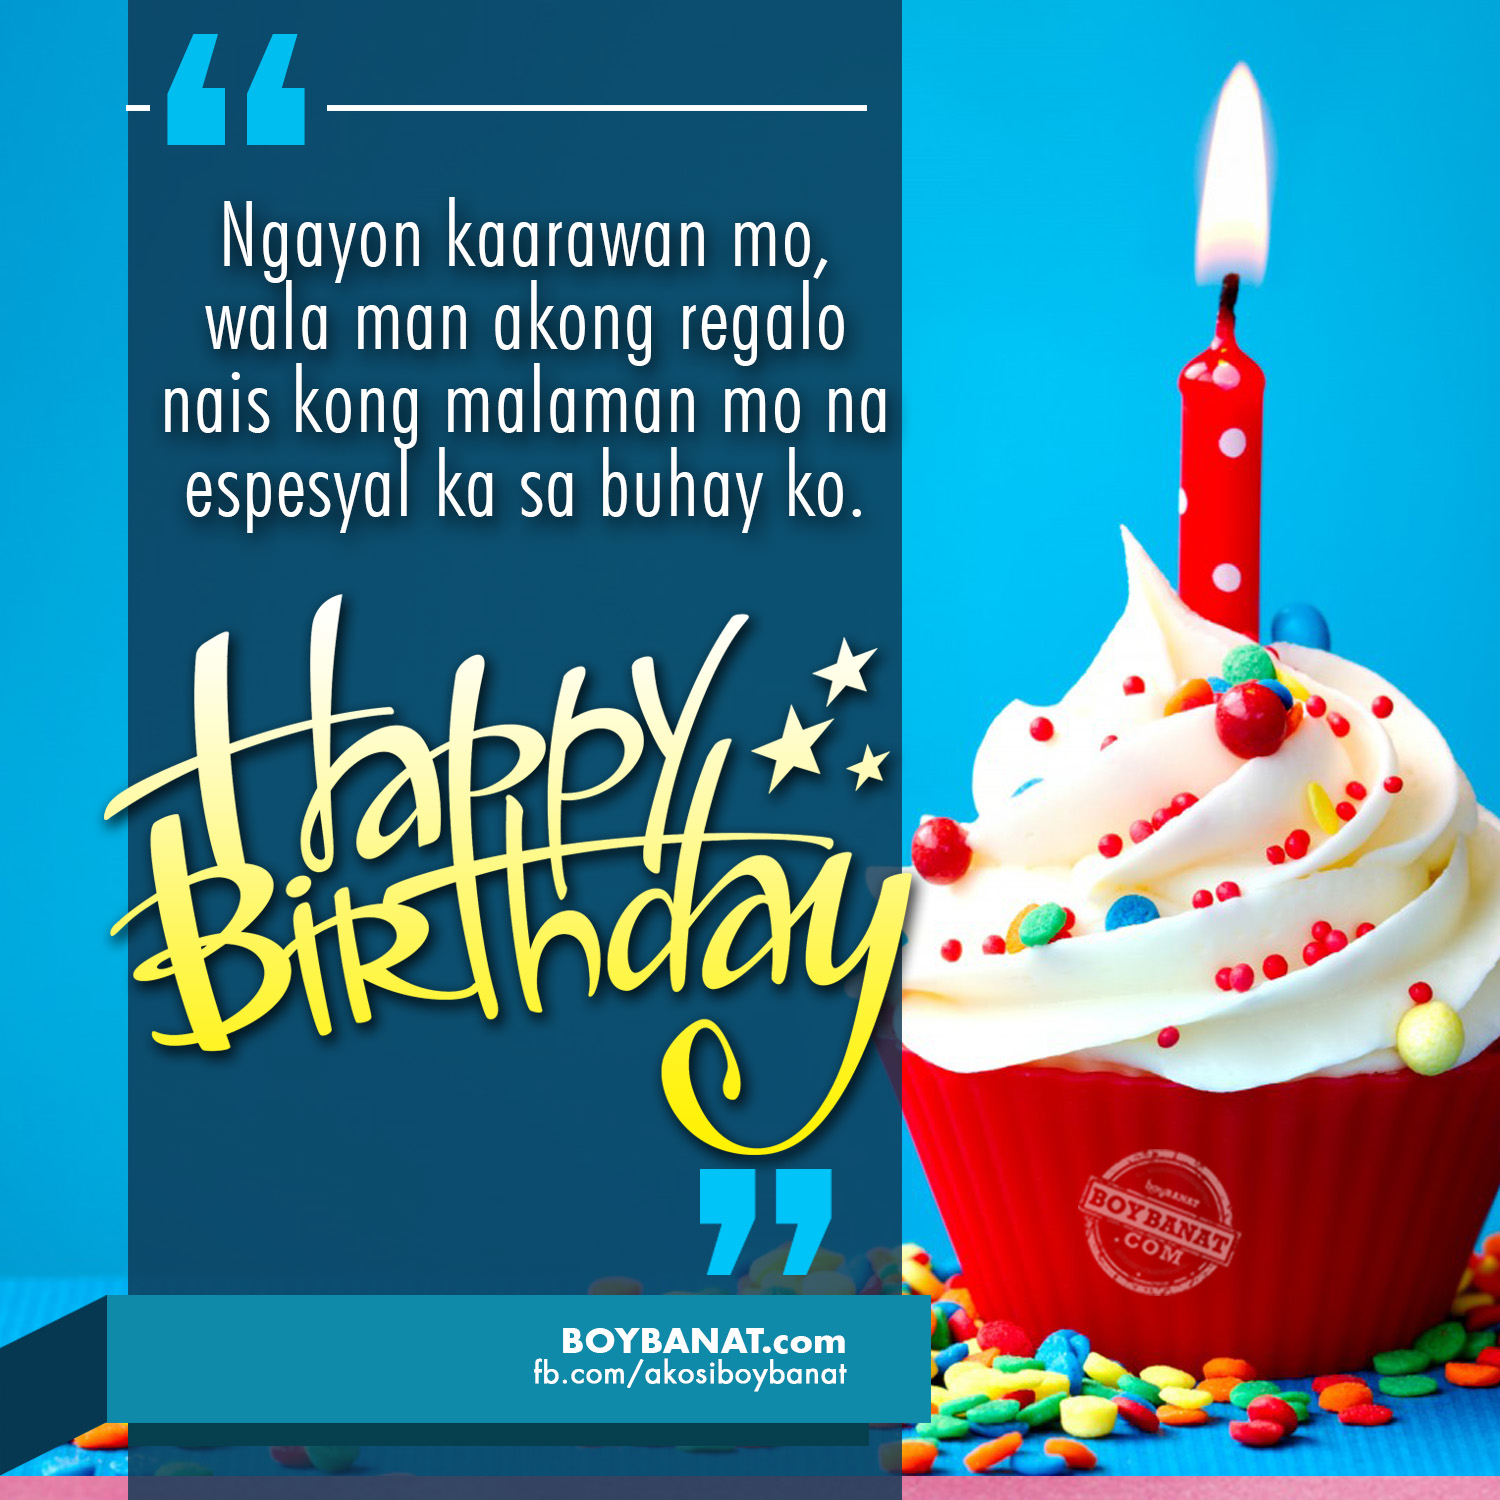 happy birthday quotes and heartfelt birthday messages boy banat